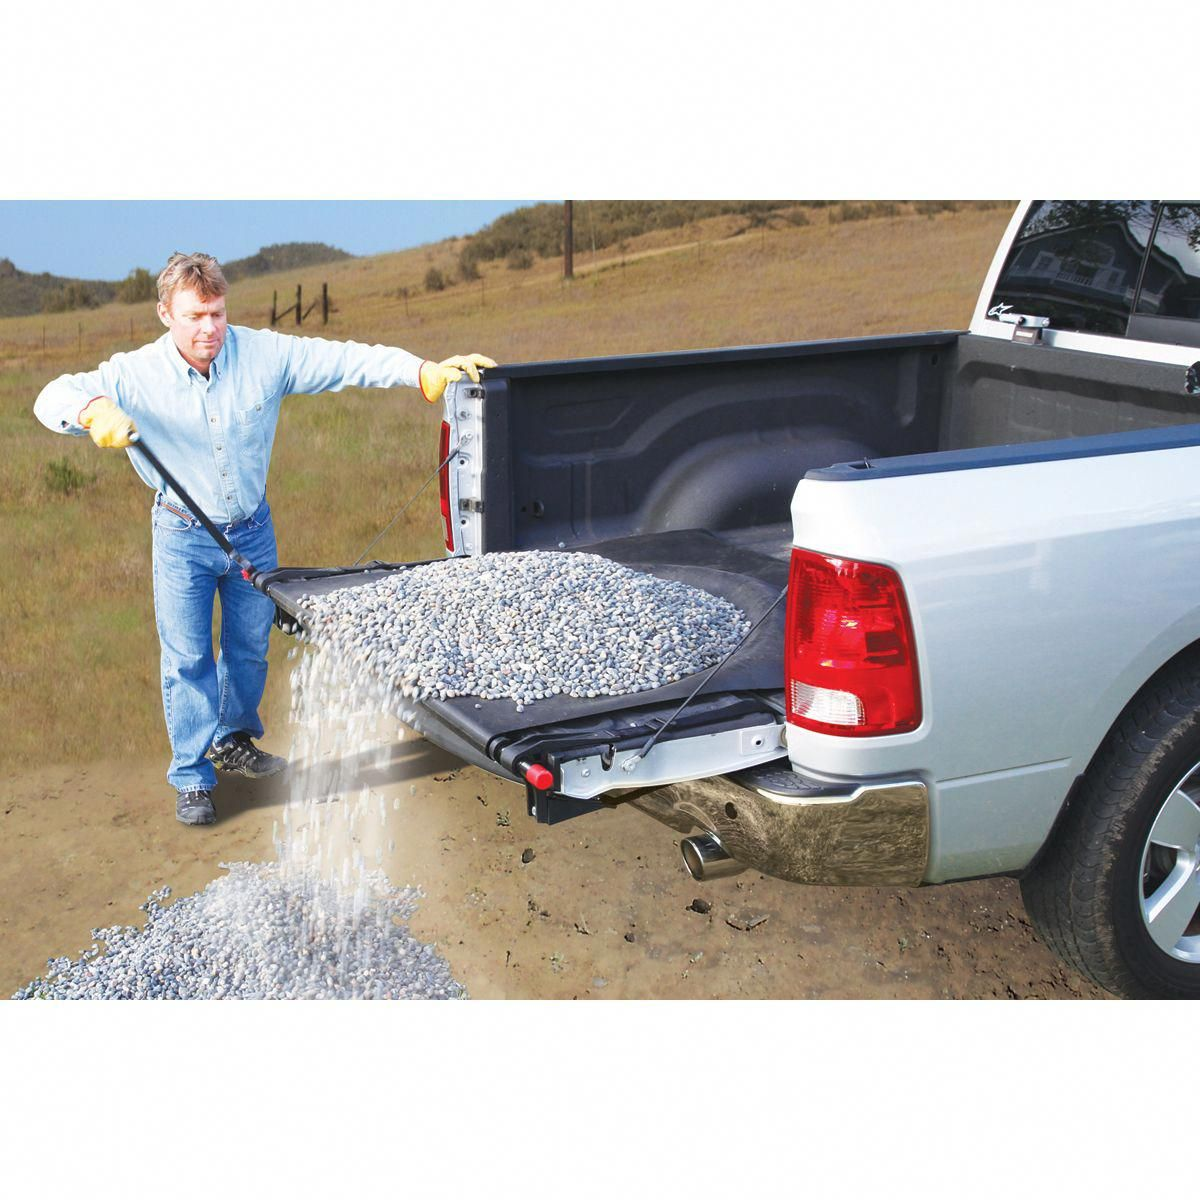 Amazing deals on this Truck Bed Cargo Unloader at Harbor